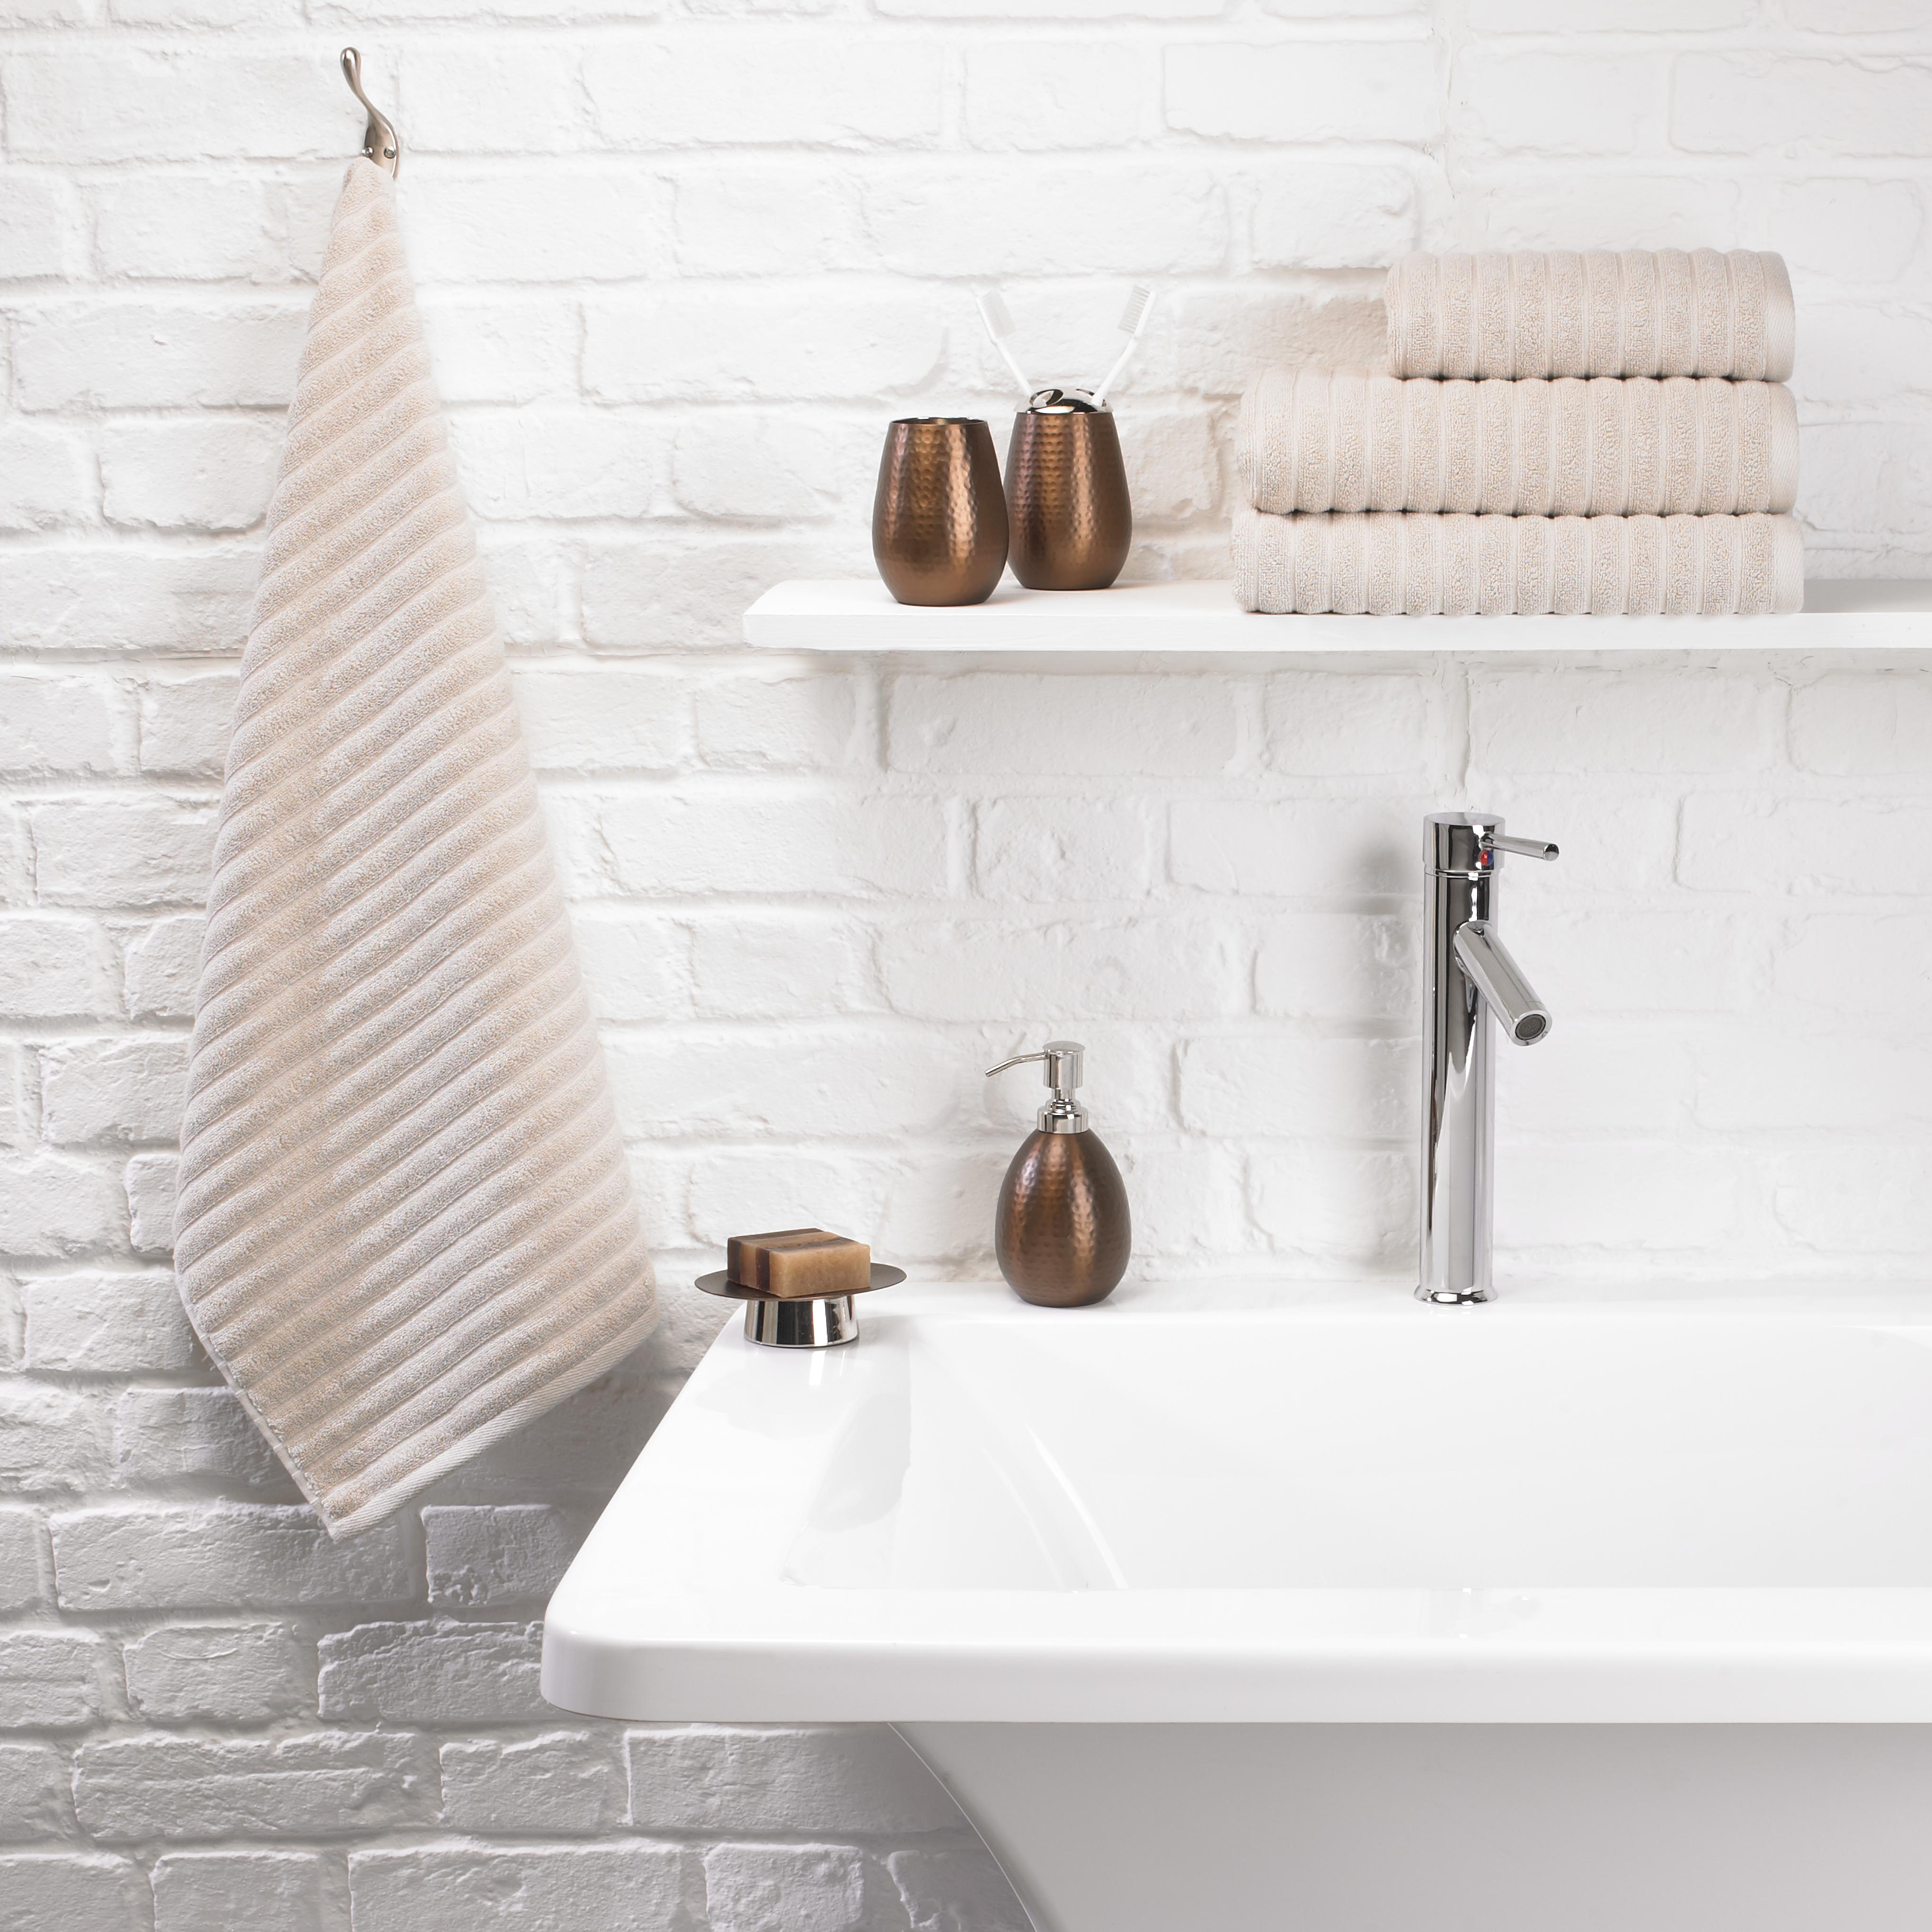 Towels ribbed jacquard stone